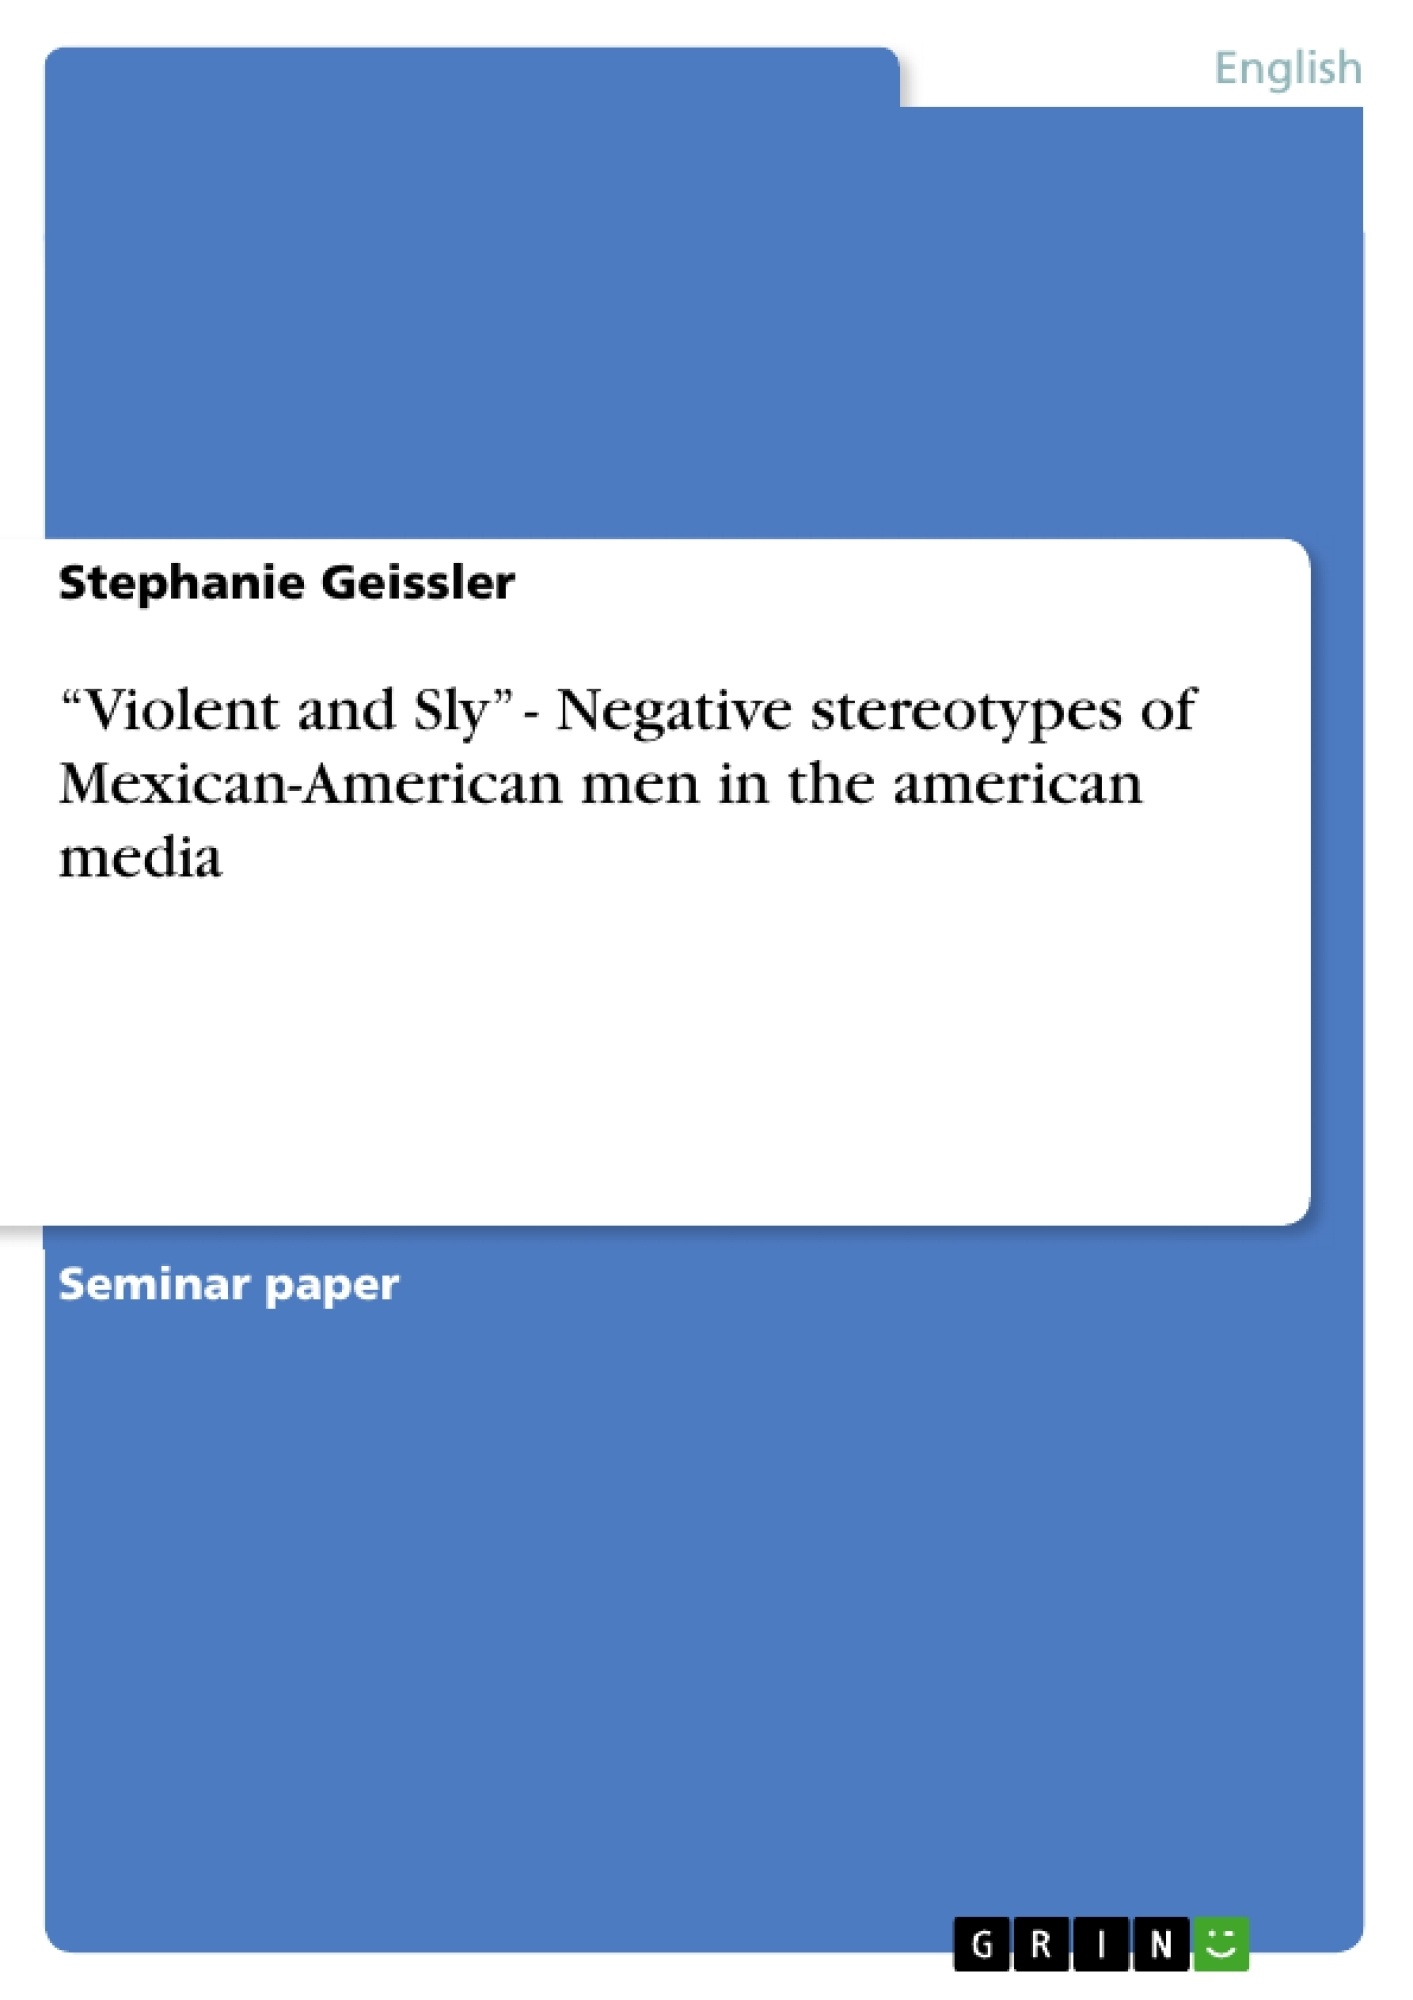 stereotype essays cover letter essay cover letter essay gxart  violent and sly rdquo negative stereotypes of mexican american men ldquoviolent and slyrdquo negative stereotypes of dracula essays